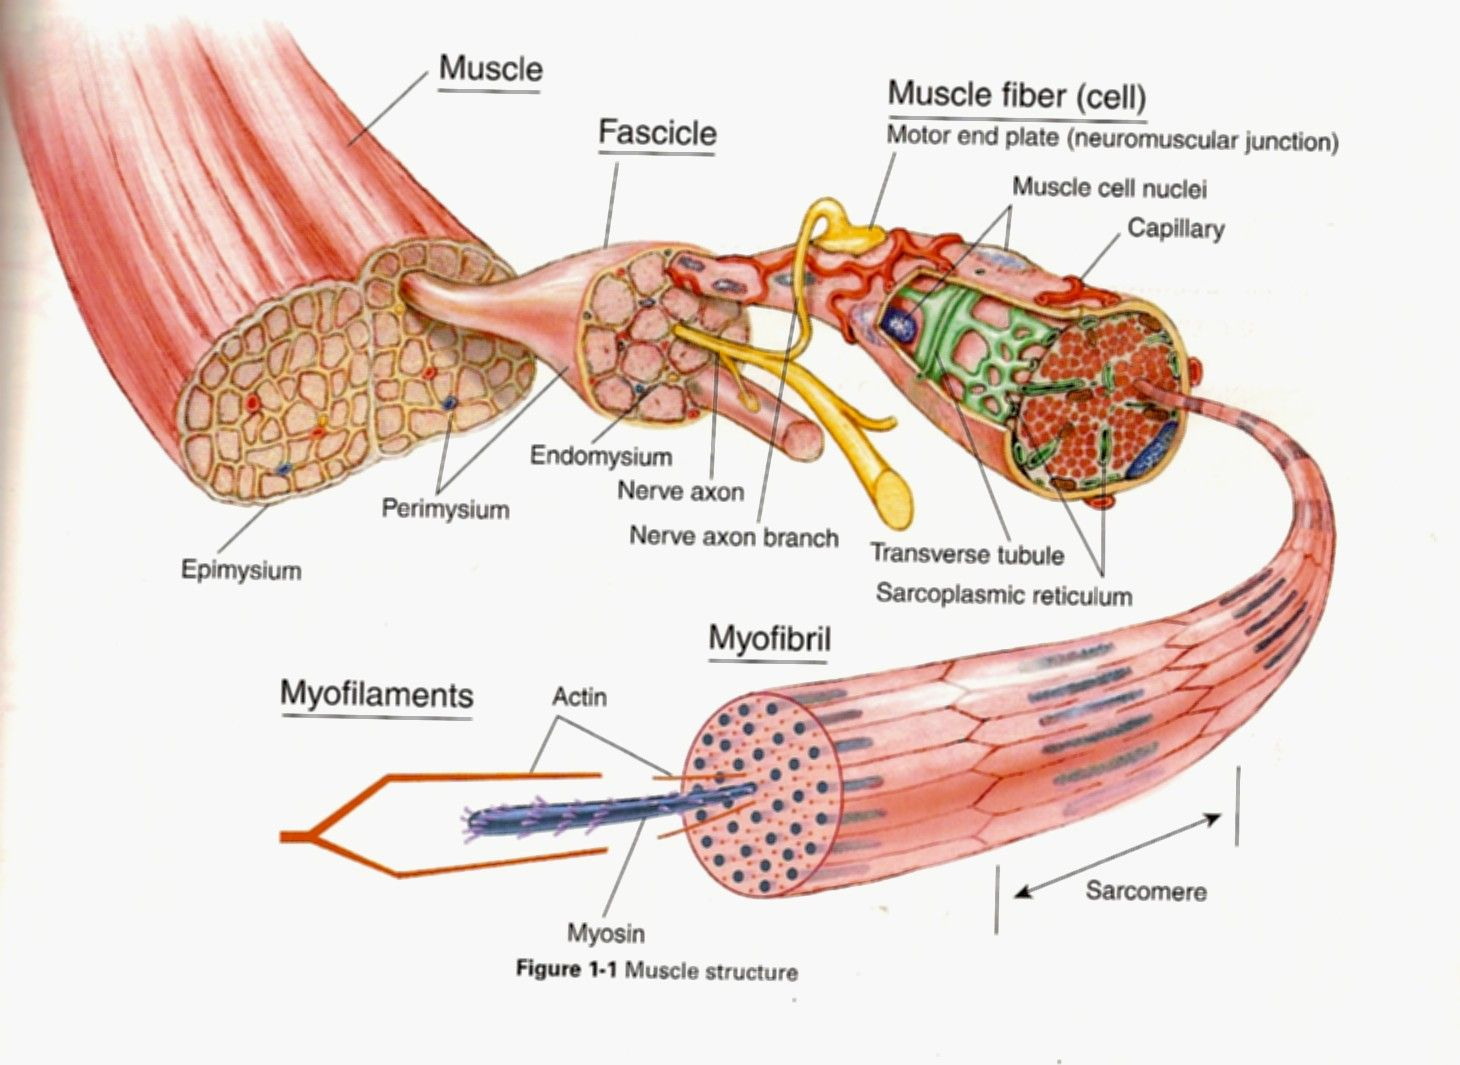 Structure Of A Muscle Fibre